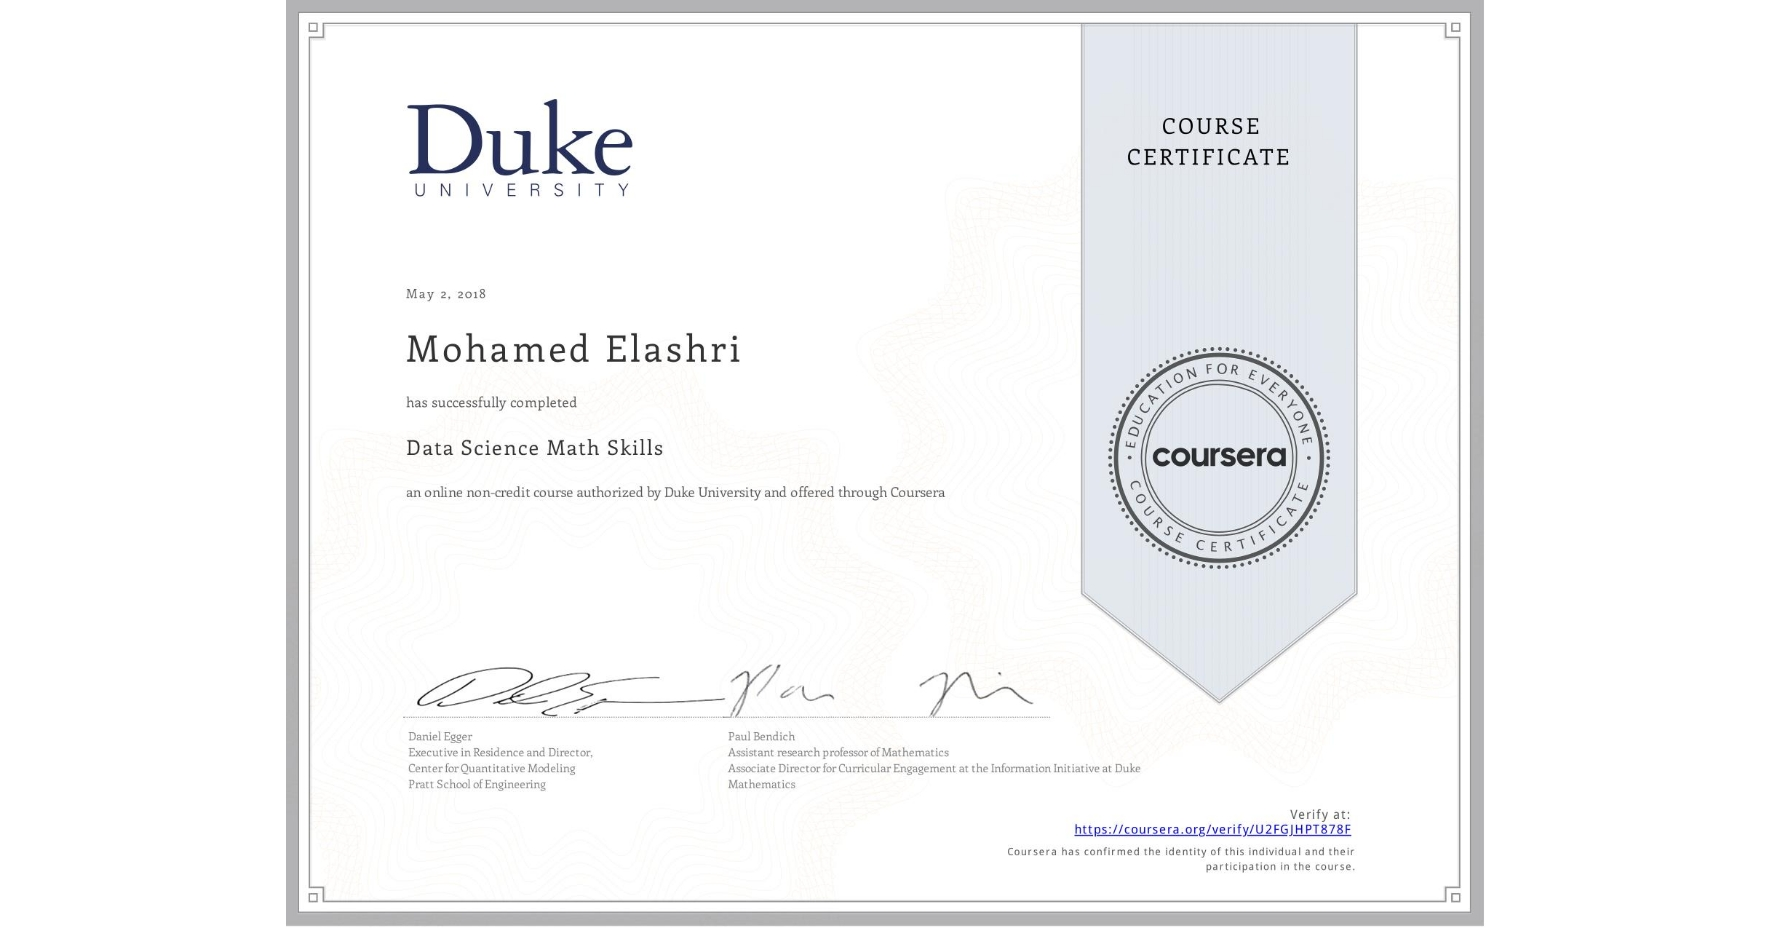 View certificate for Mohamed Elashri, Data Science Math Skills, an online non-credit course authorized by Duke University and offered through Coursera